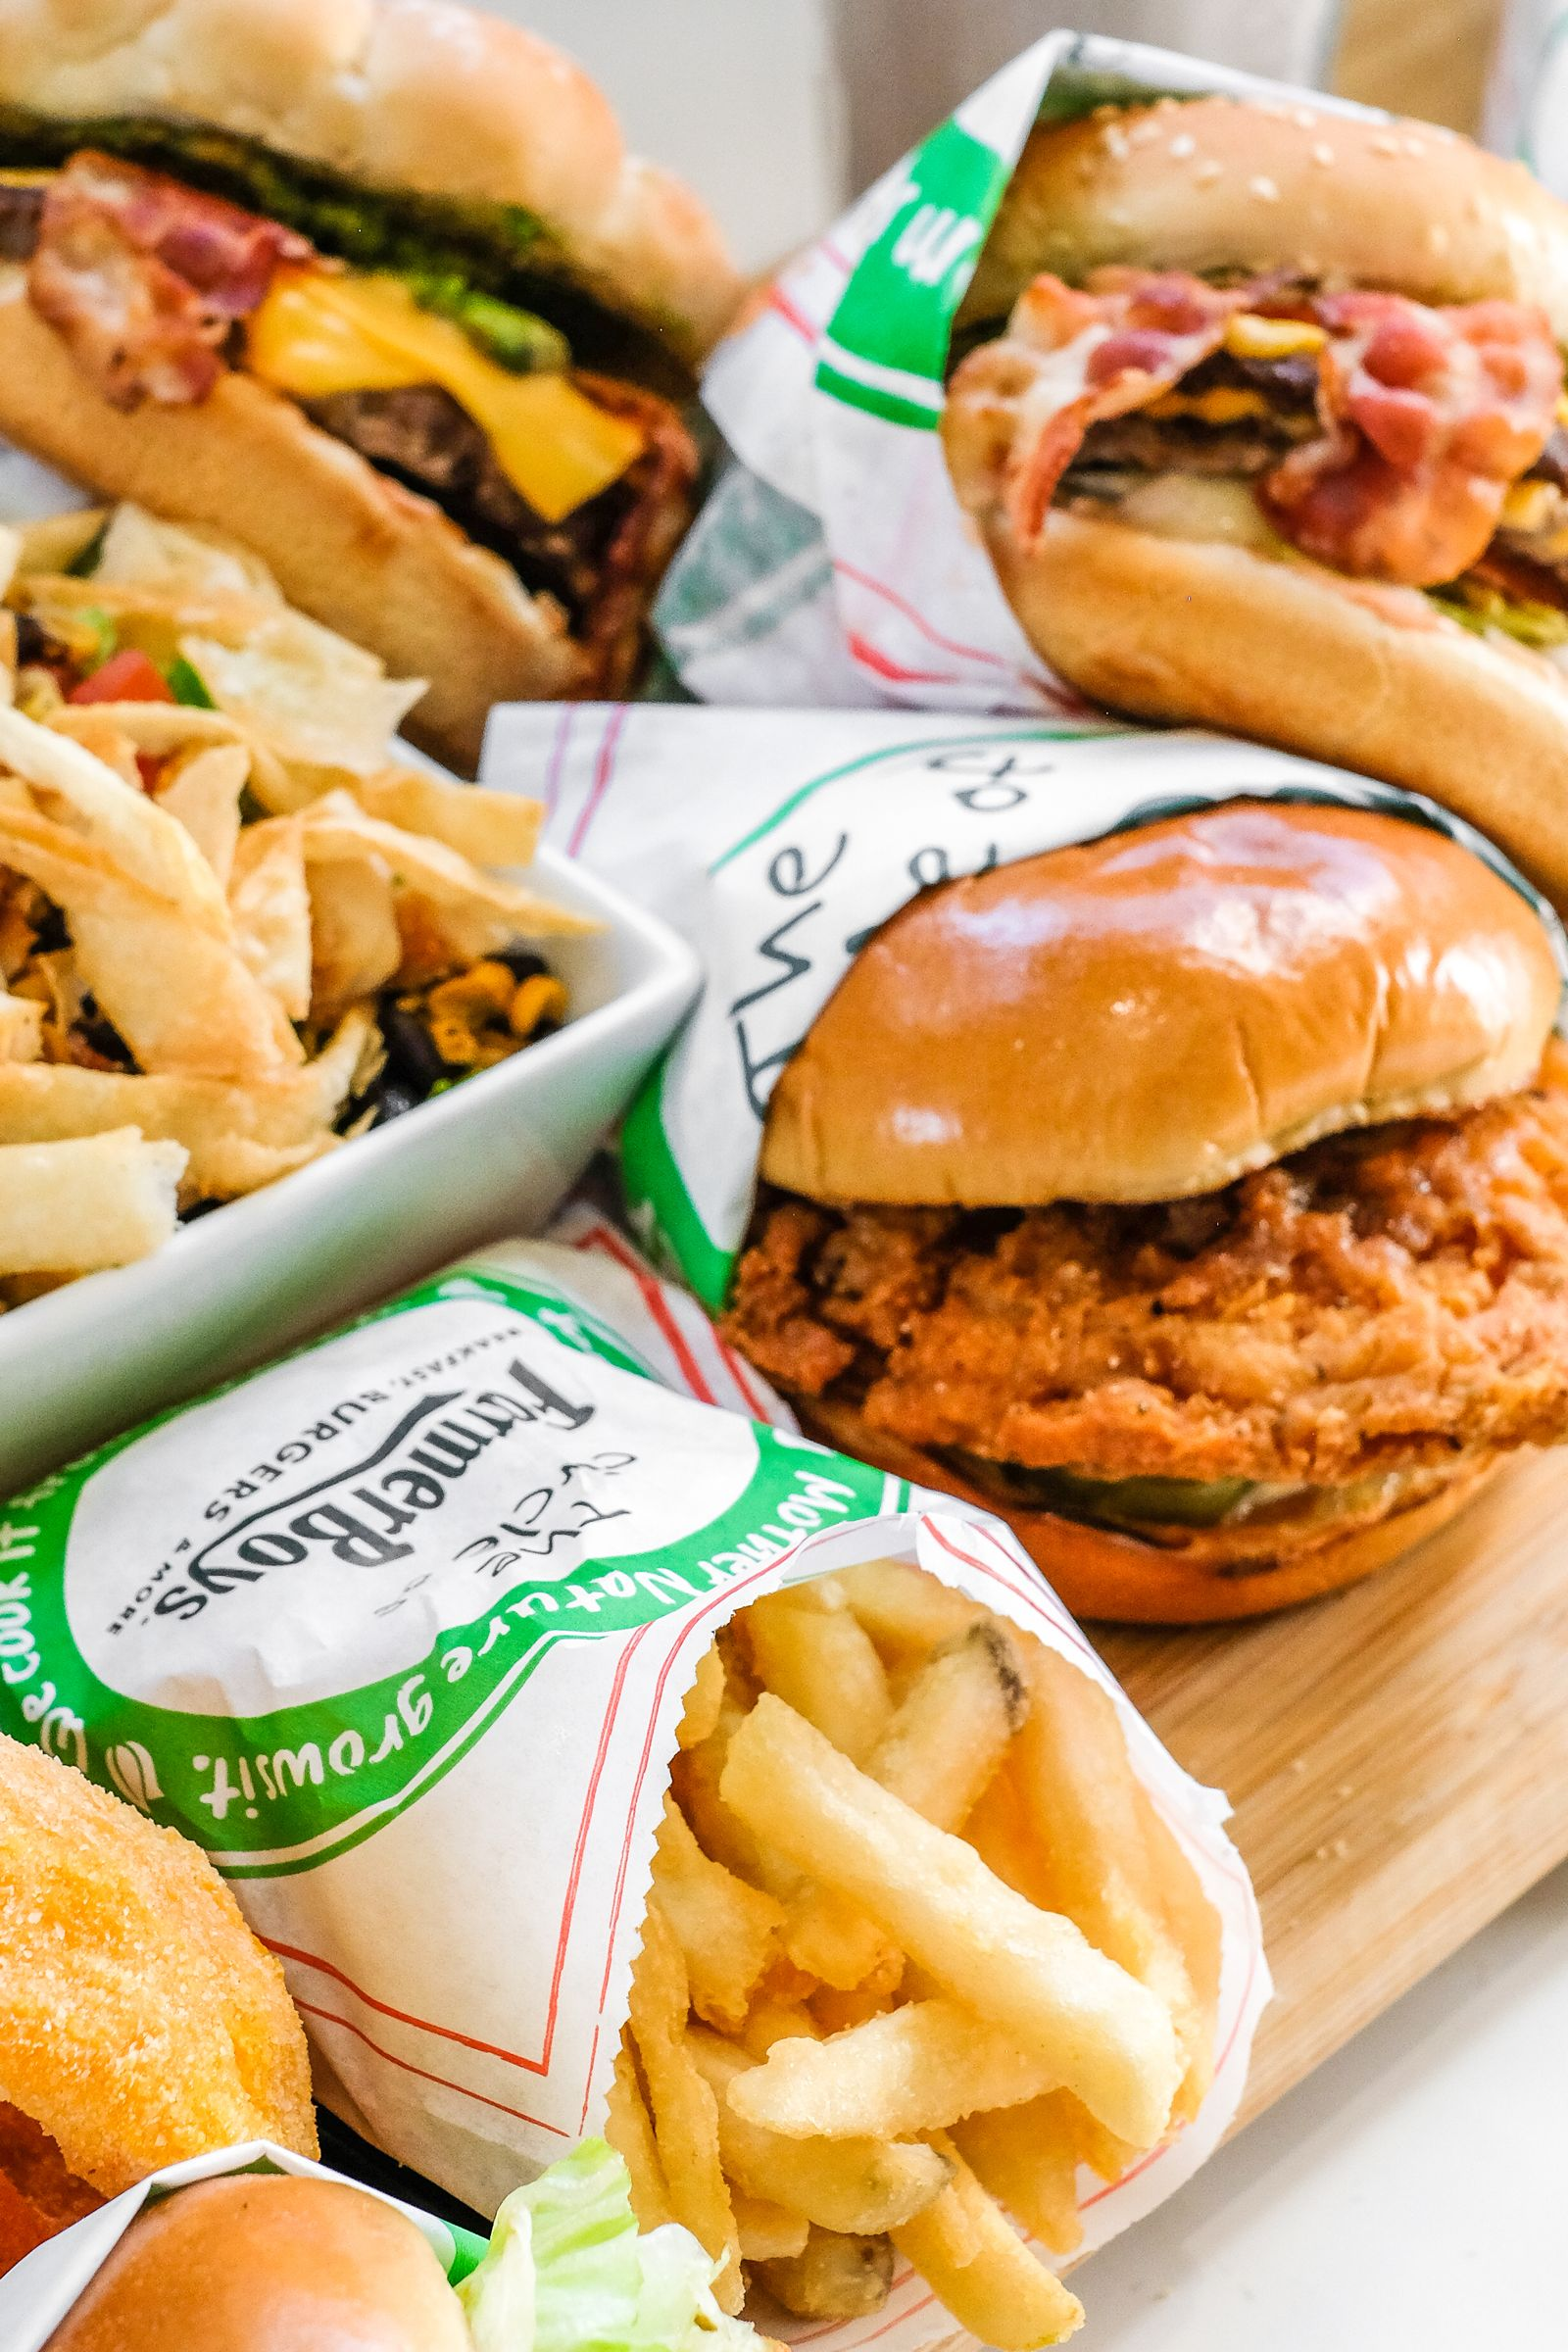 Farmer Boys, the Southern California-based fast casual concept known for its award-winning burgers and exceptional service, announced two additional Arizona sites have been secured in Phoenix and Tempe. These locations mark the second and third Arizona locations; the first opening in Gilbert in early 2021.